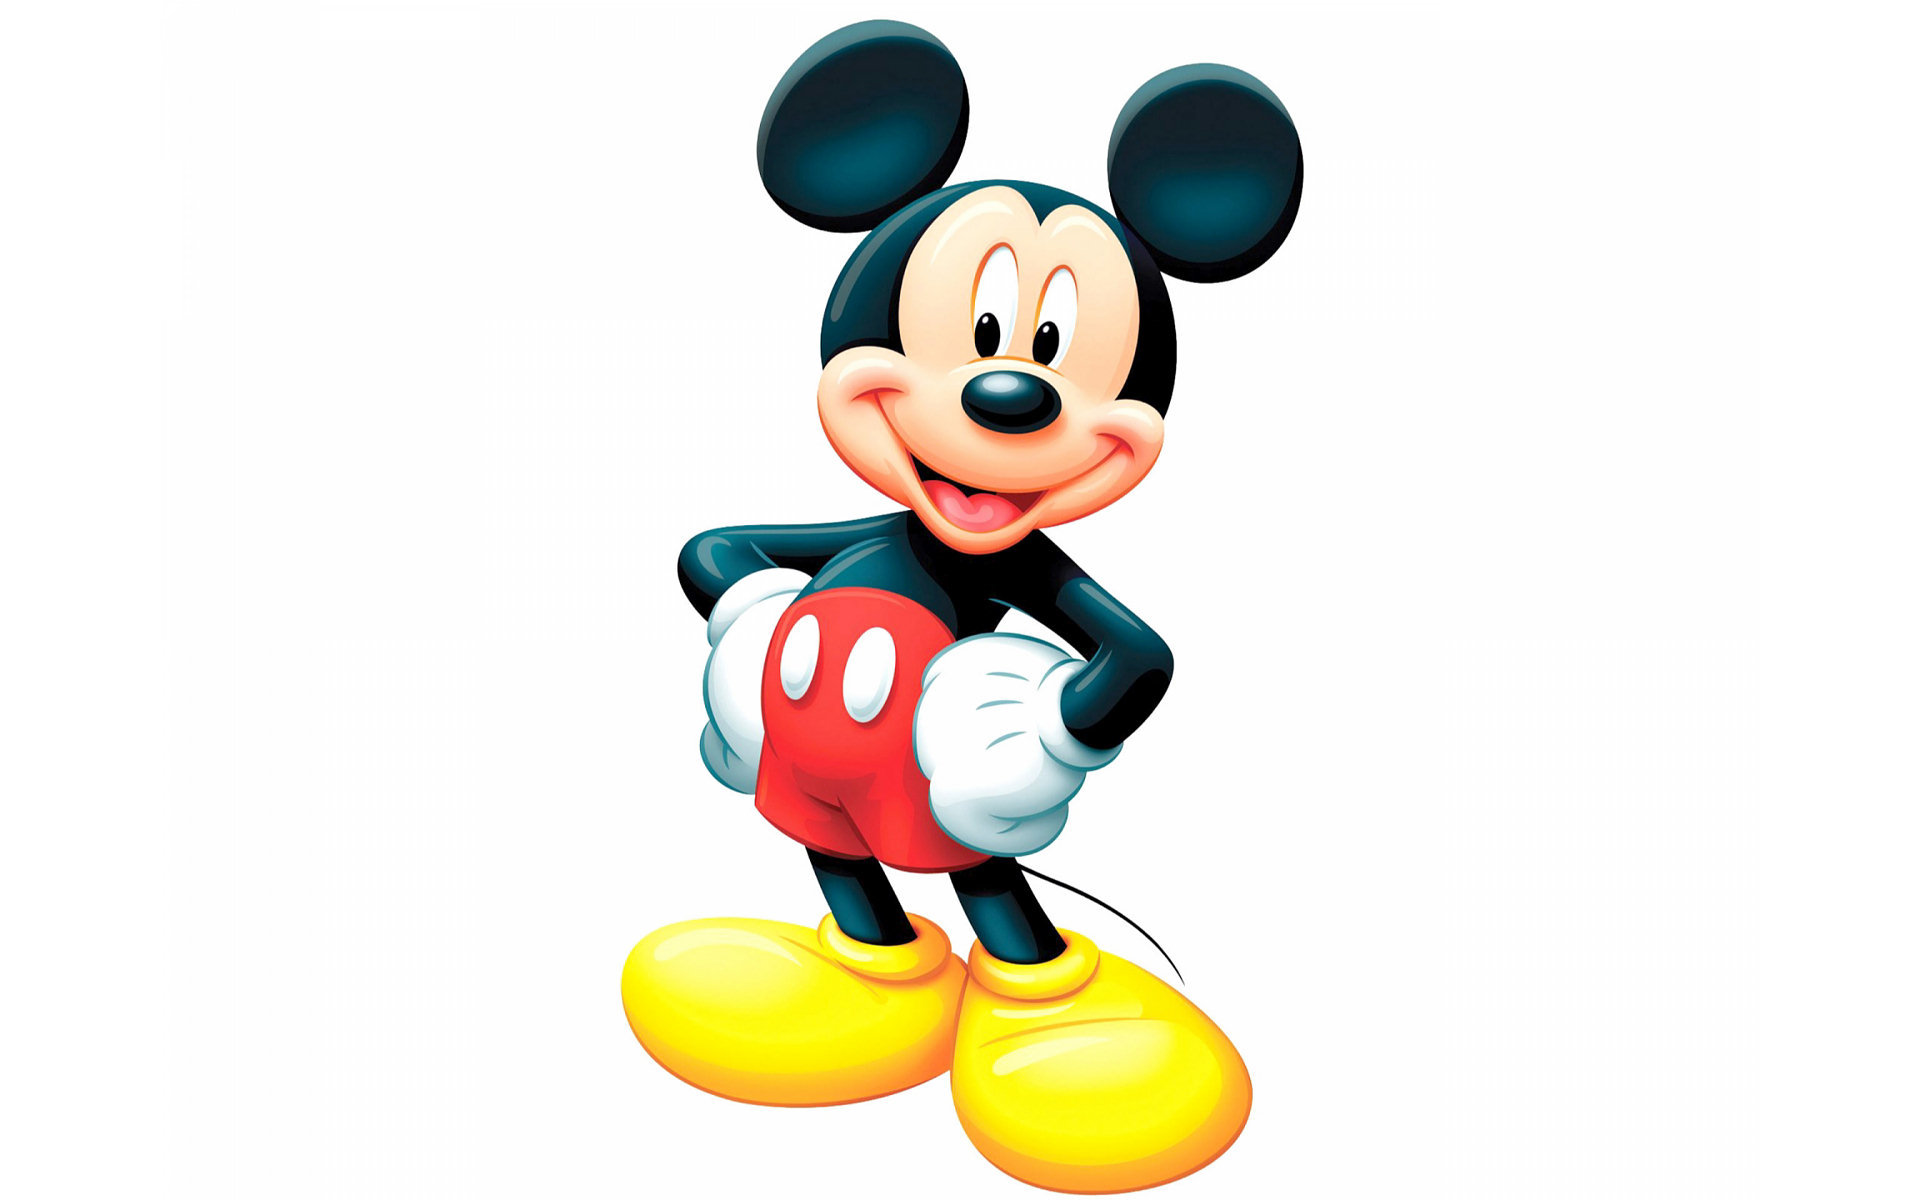 widescreen wallpapers of mickey - photo #5